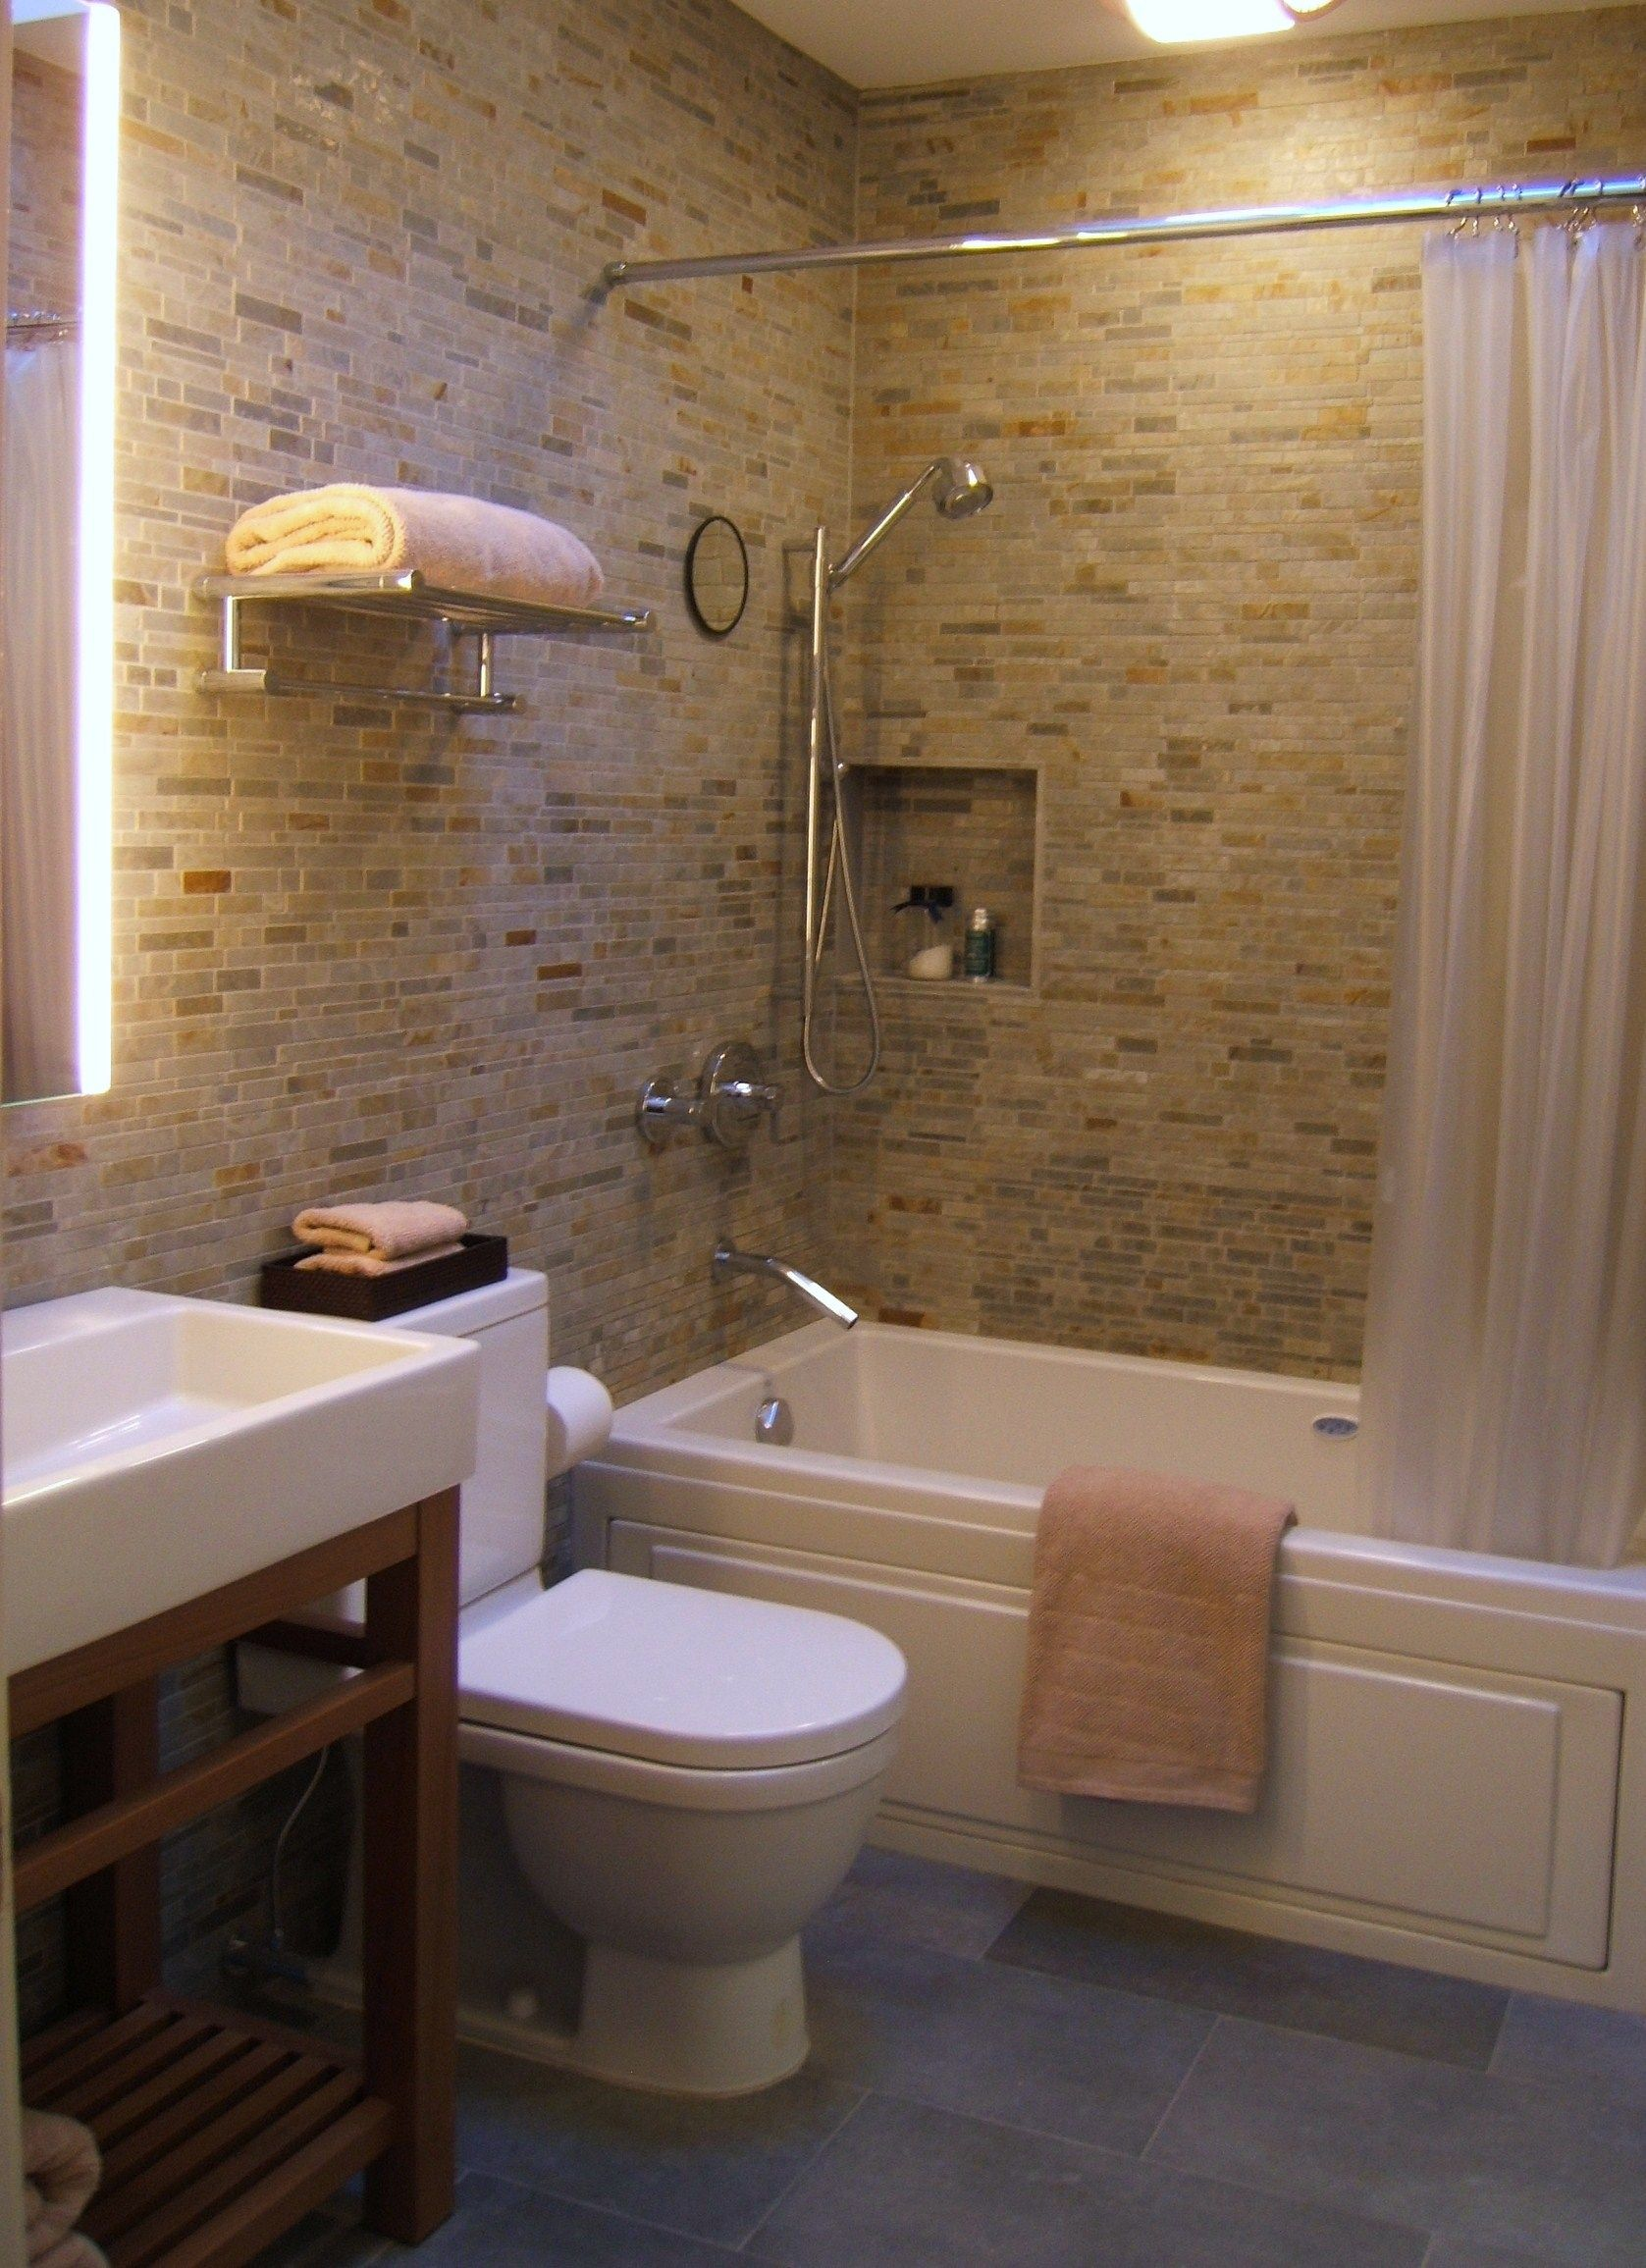 Small bathroom designs south africa small bath for A small bathroom design